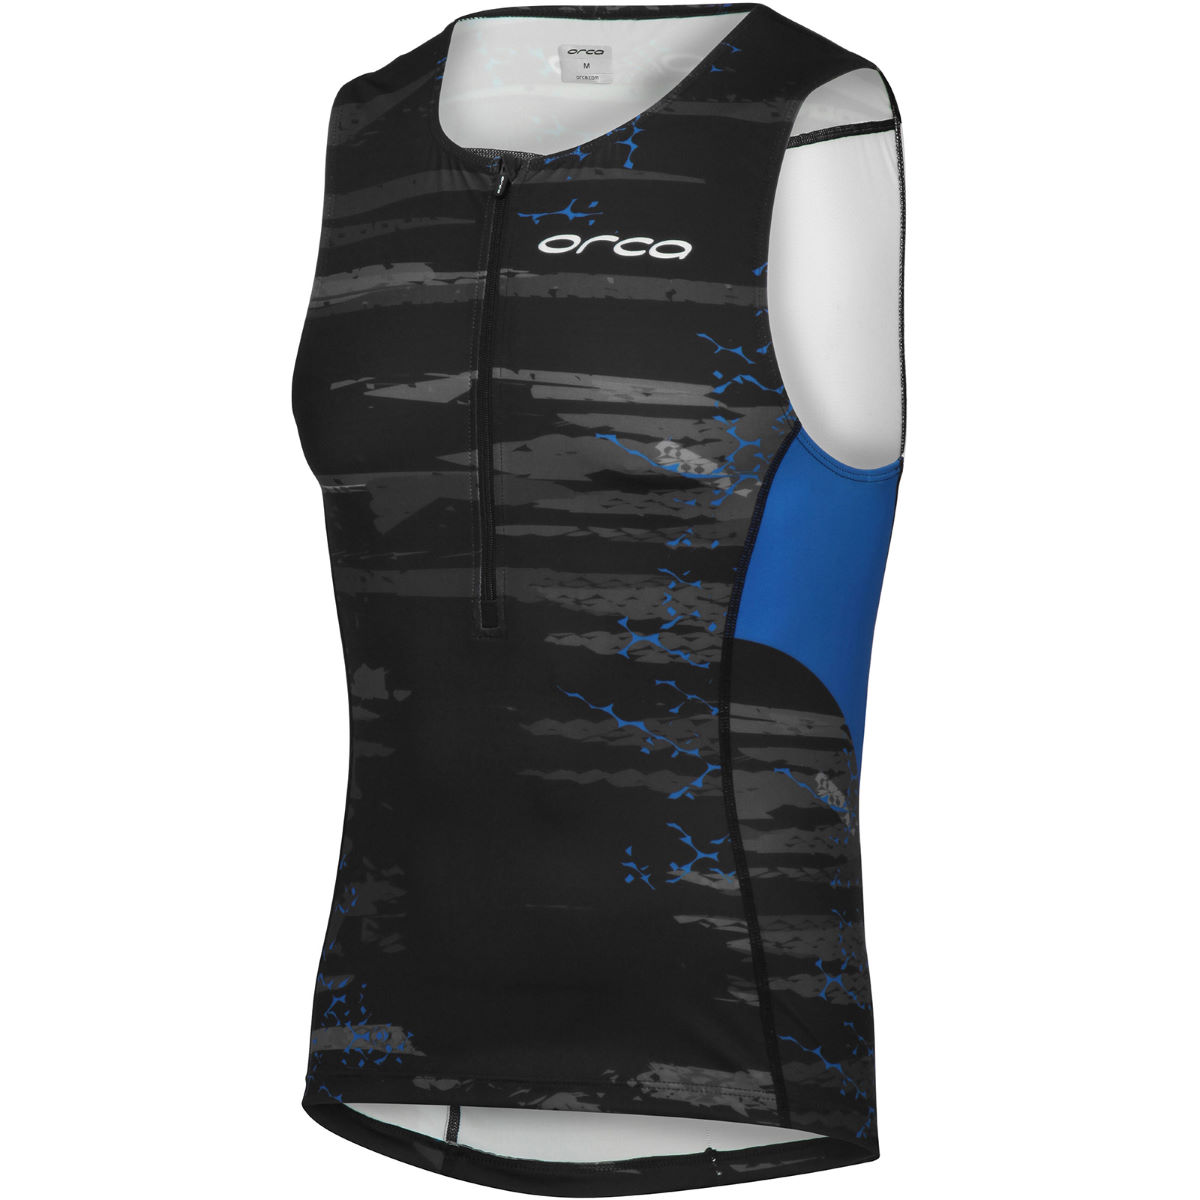 Maillot de triathlon Orca Tex-Abs (exclusivité Wiggle) - Large